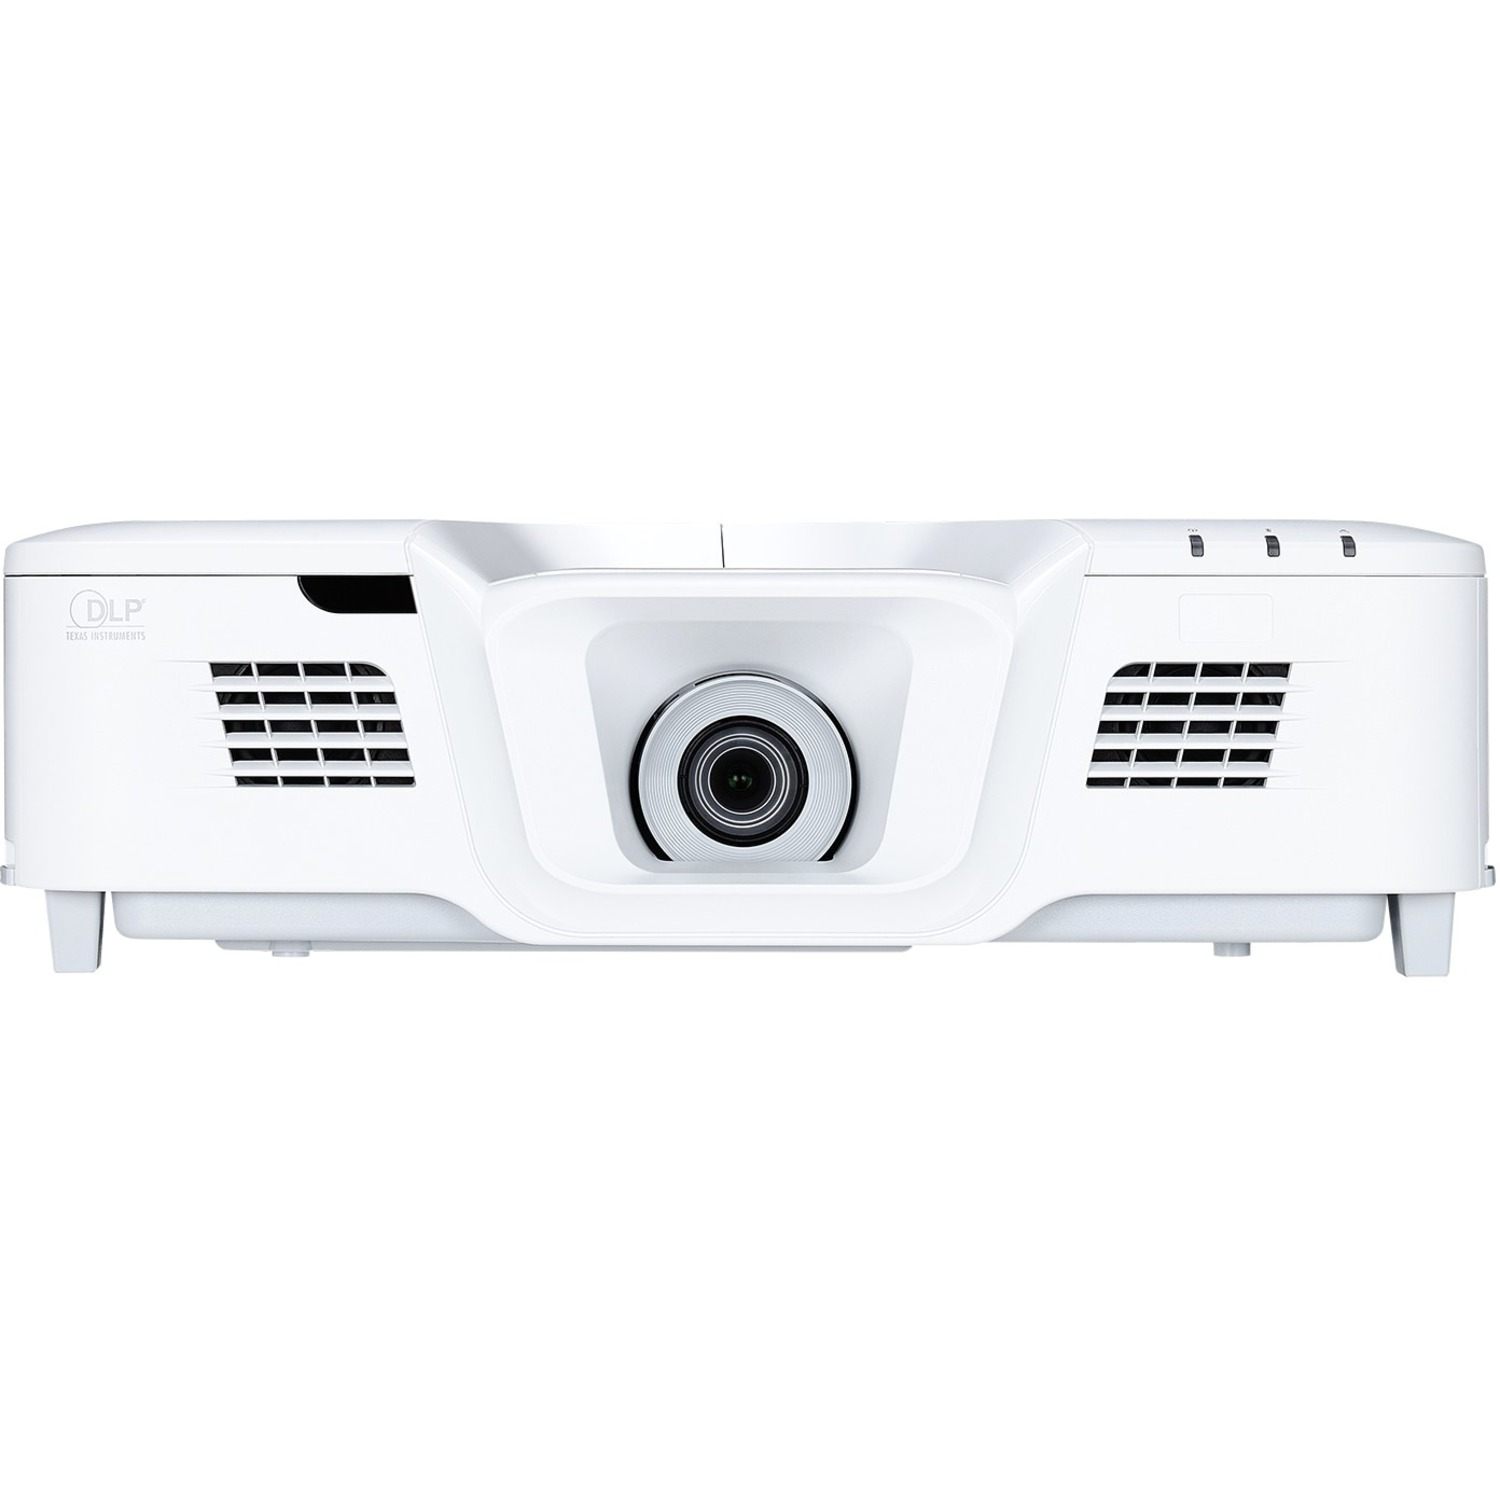 Viewsonic PG800W 3D Ready DLP Projector - 16:9_subImage_1